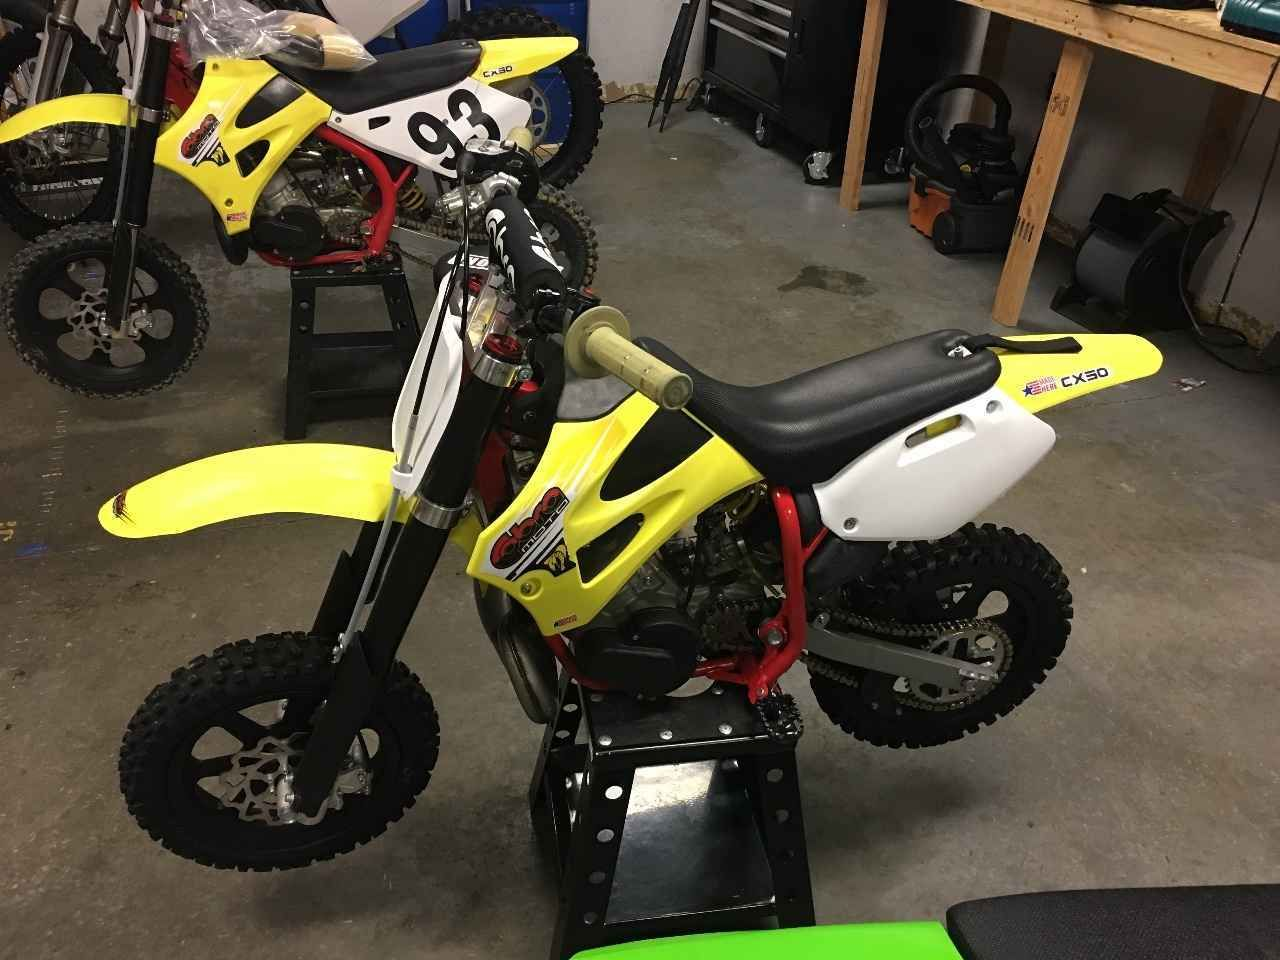 2016 Cobra Cx50 Jr With Images Motorcycles For Sale Motorcycle Cobra